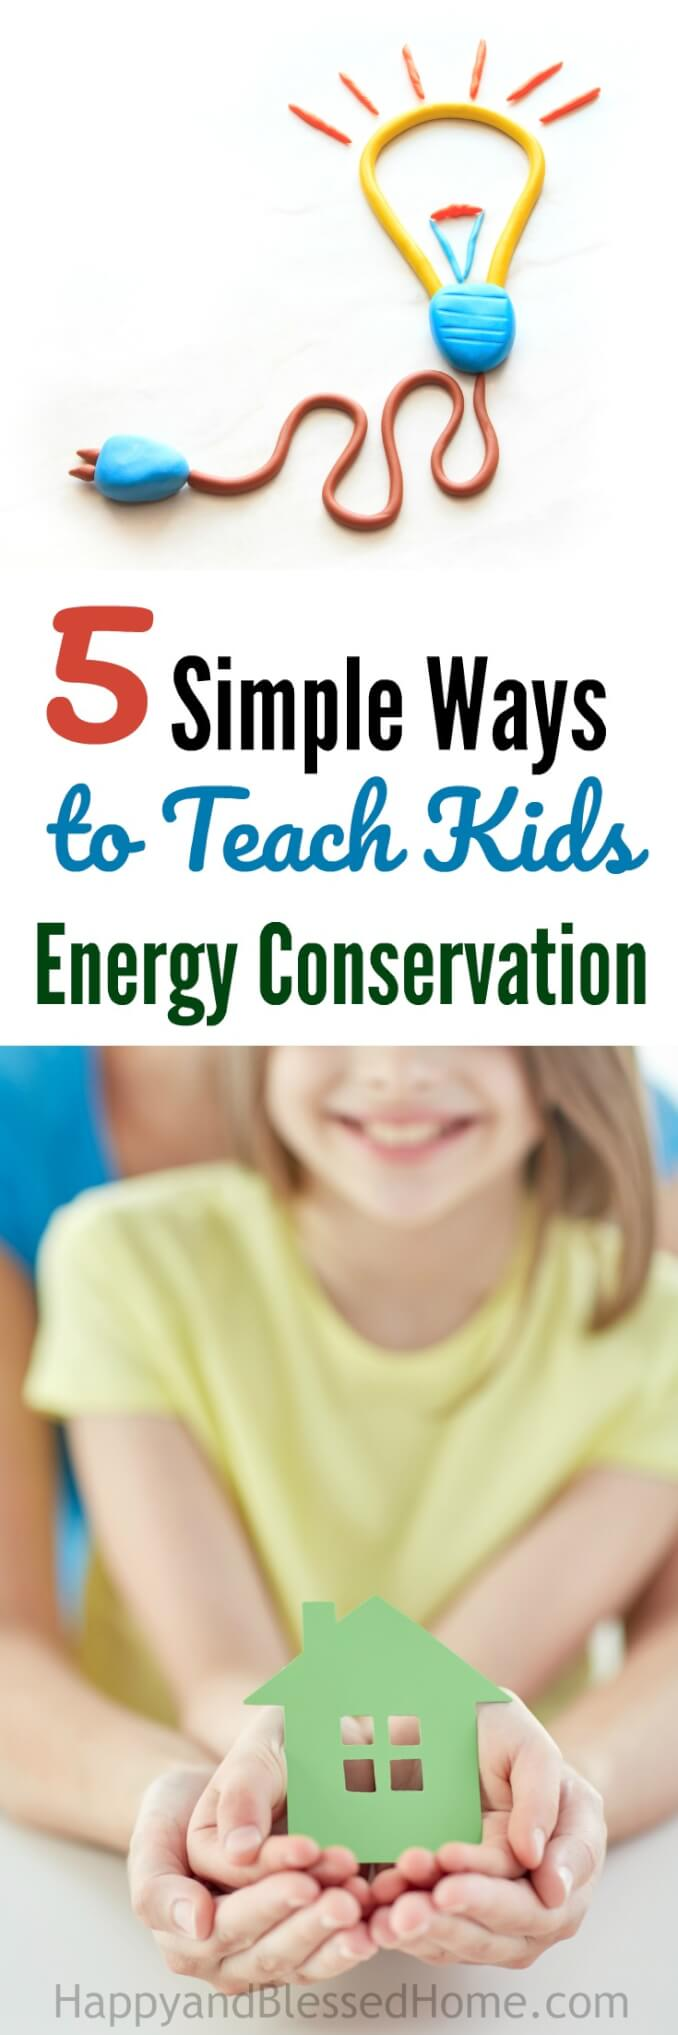 5 Simple Ways to Teach Kids About Energy Conservation and exciting news about a $500 Gift Card Giveaway! #ChangeTheCurrent